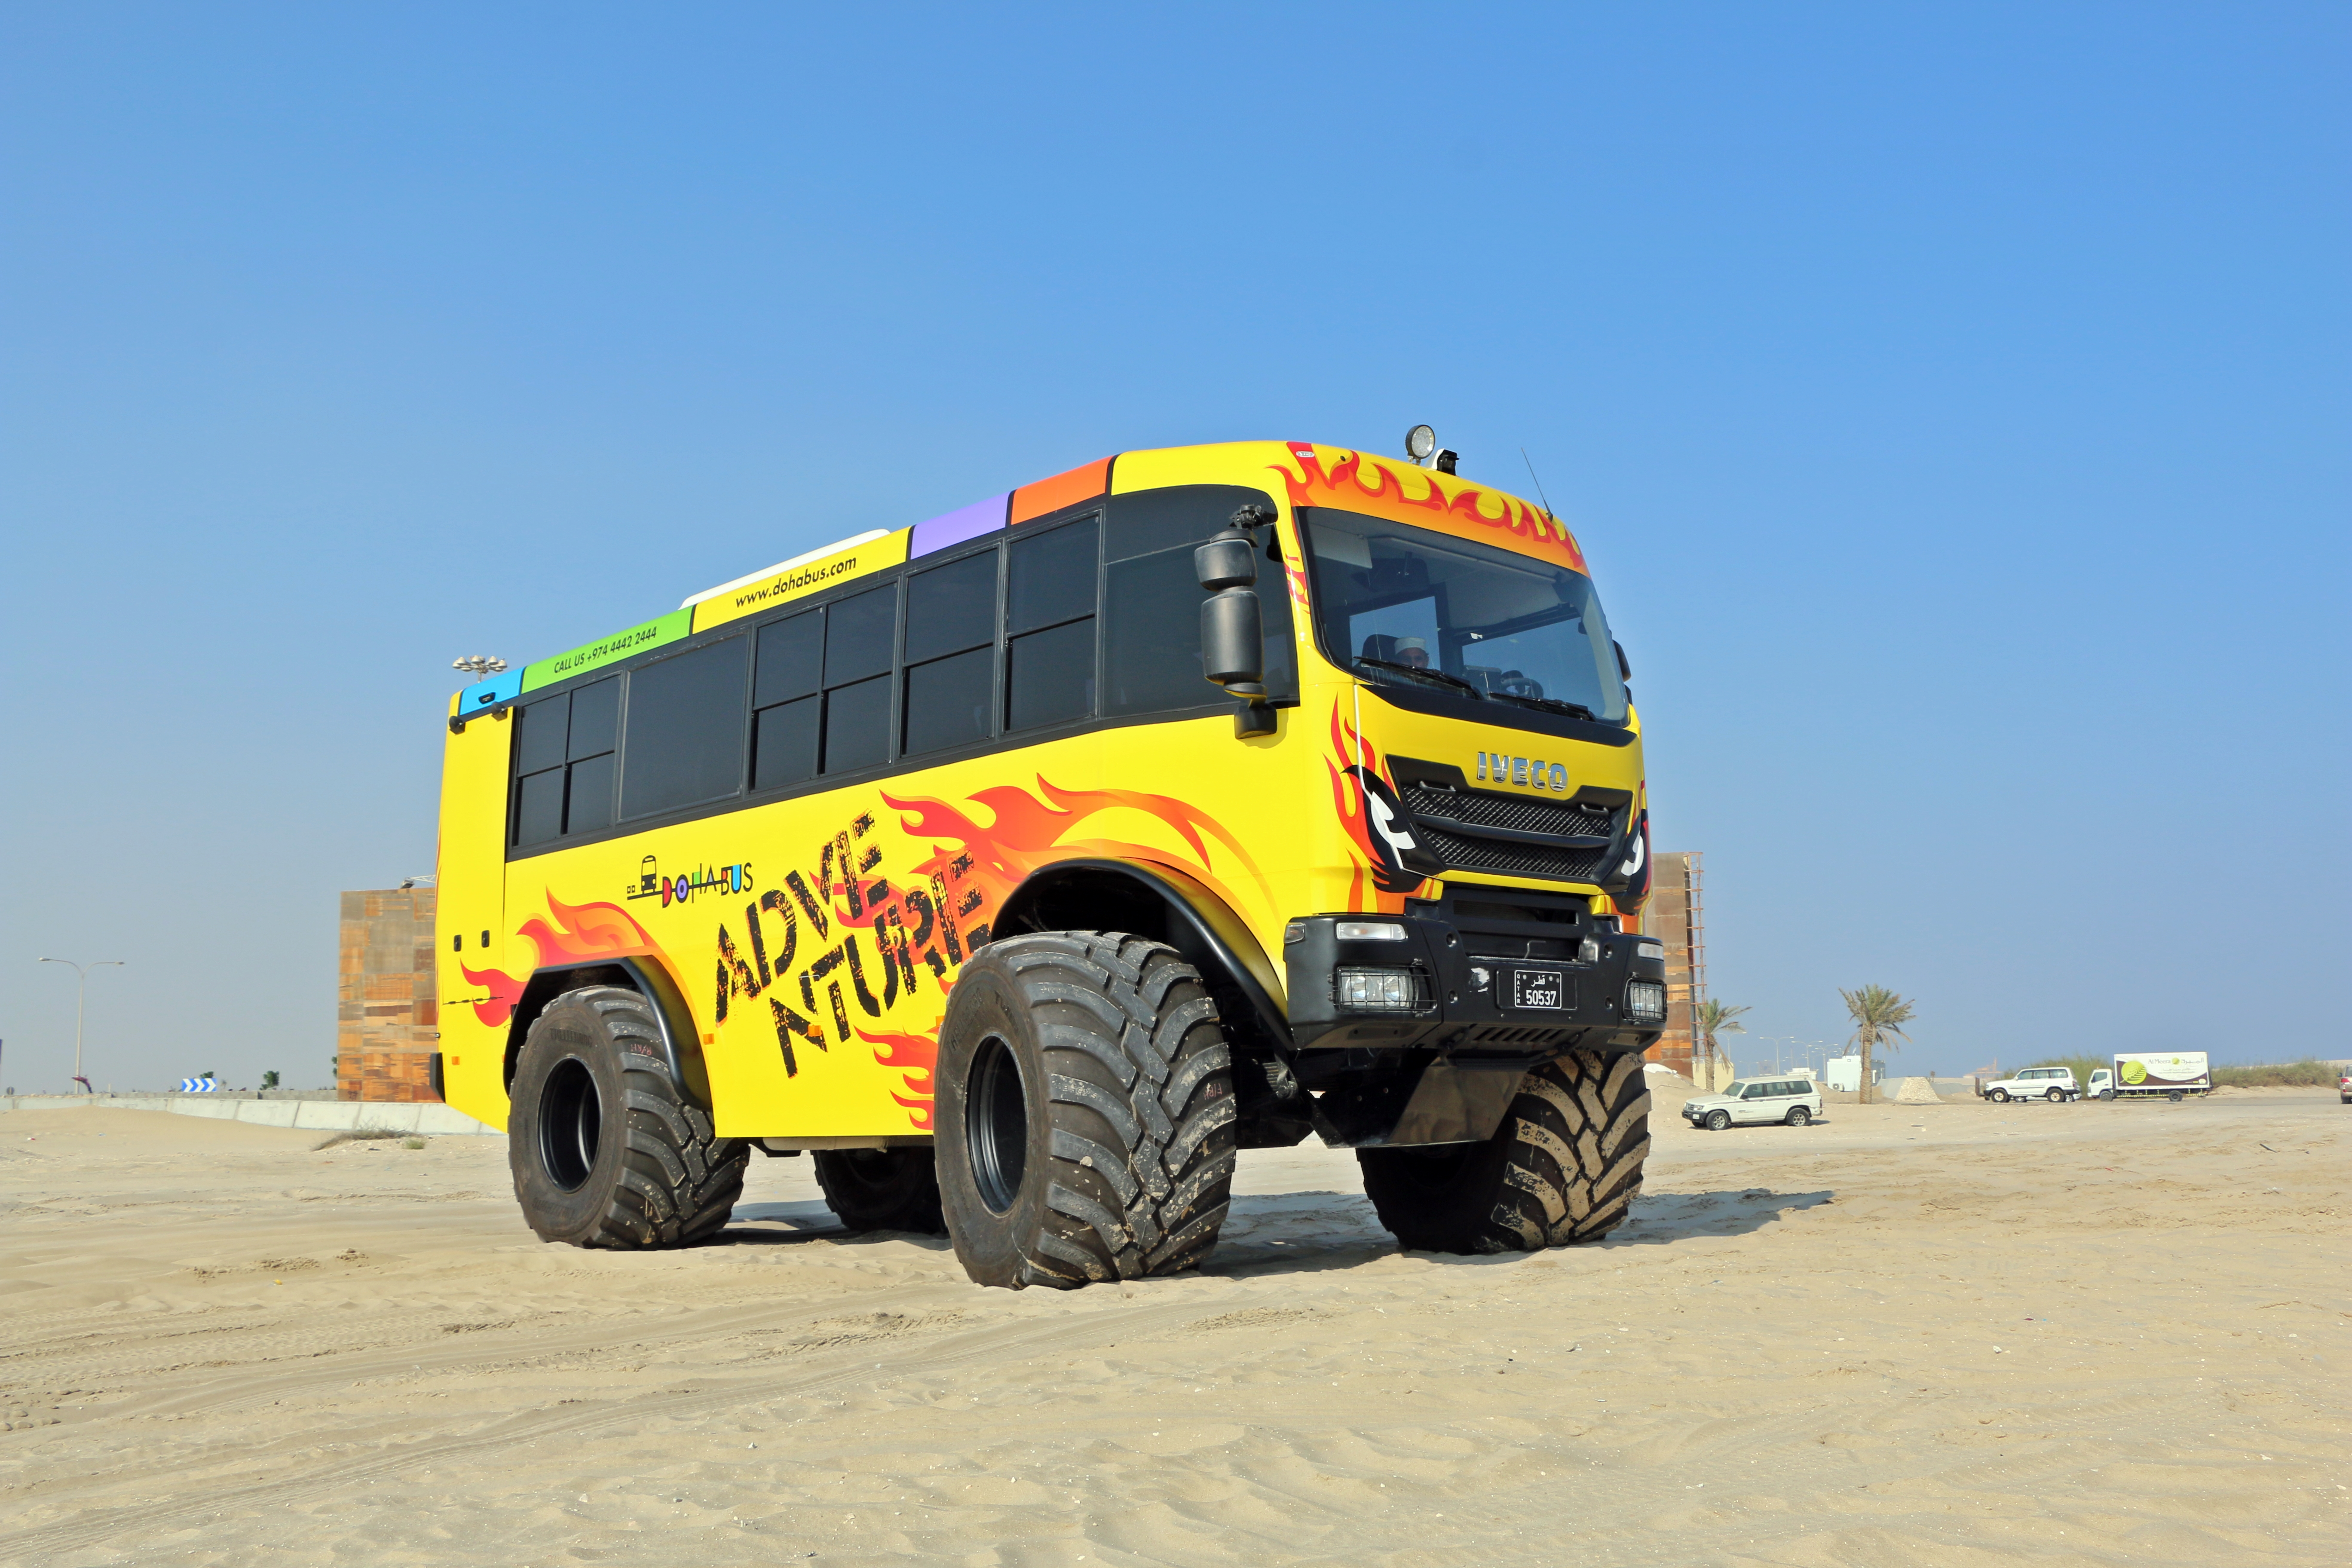 Bus 4x4 Doha Bus Dune Killer